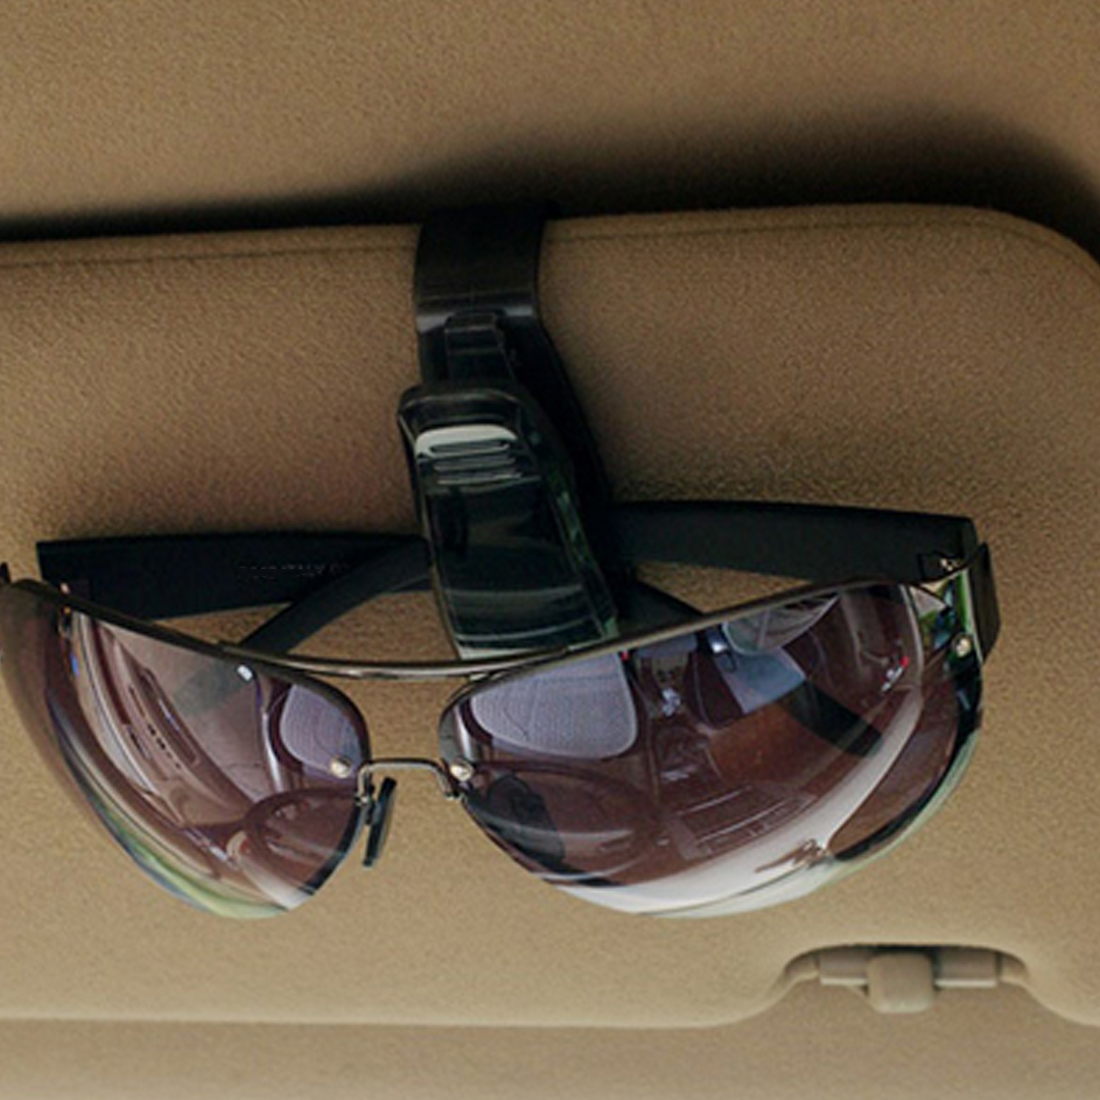 Fashion Auto Fastener Cip Auto Accessories ABS Car Vehicle Sun Visor Sunglasses Eyeglasses Glasses Holder Ticket Clip in Eyewear Accessories from Apparel Accessories